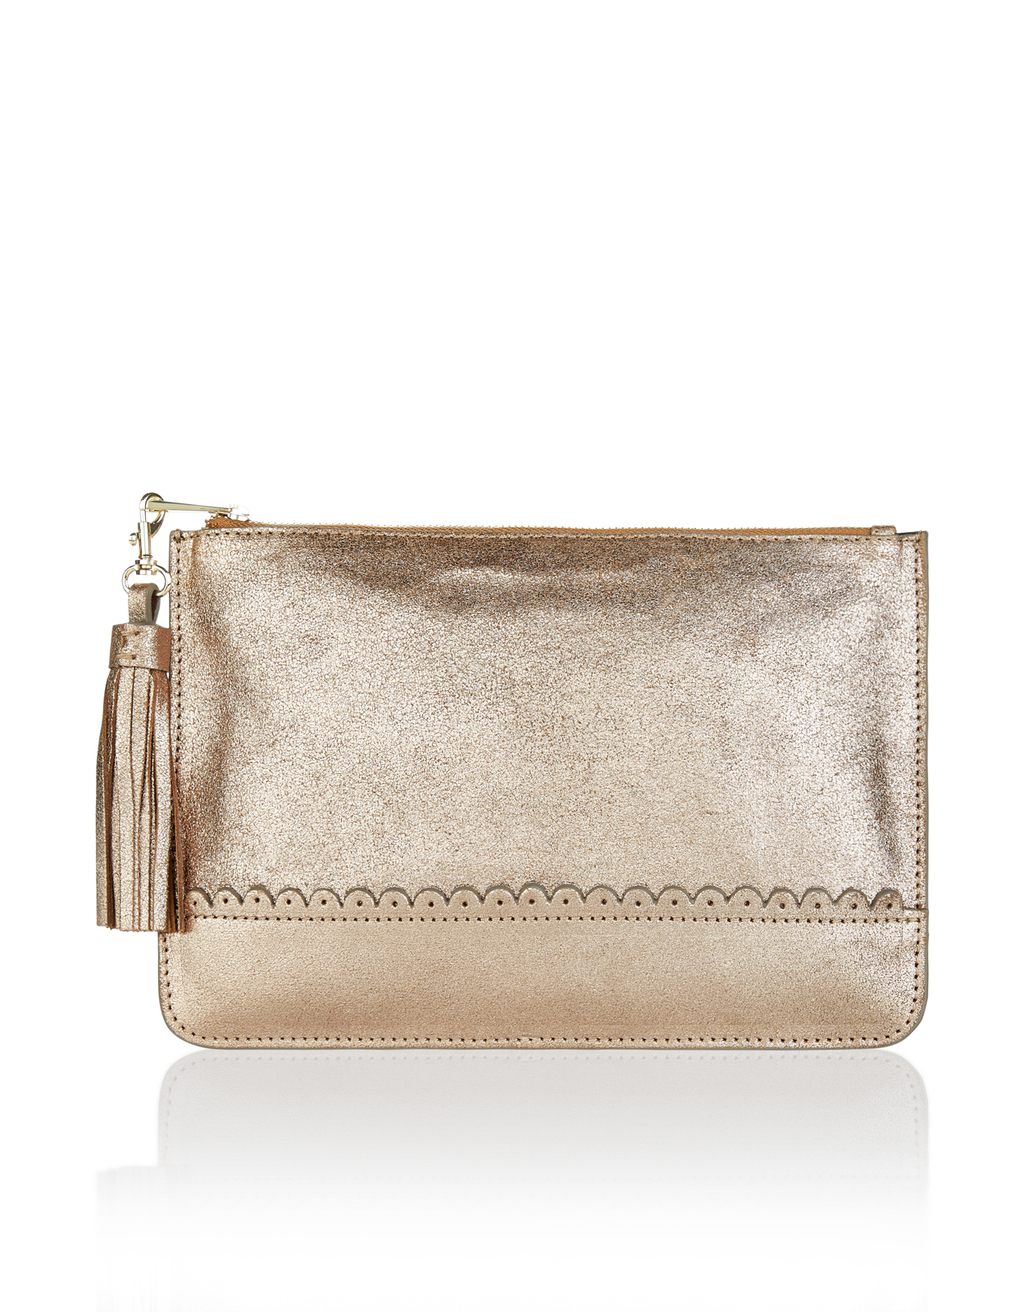 Metallic Pouch - predominant colour: gold; occasions: evening, occasion; type of pattern: standard; style: clutch; length: hand carry; size: small; material: faux leather; embellishment: tassels; pattern: plain; finish: metallic; season: a/w 2016; wardrobe: event; trends: metallics